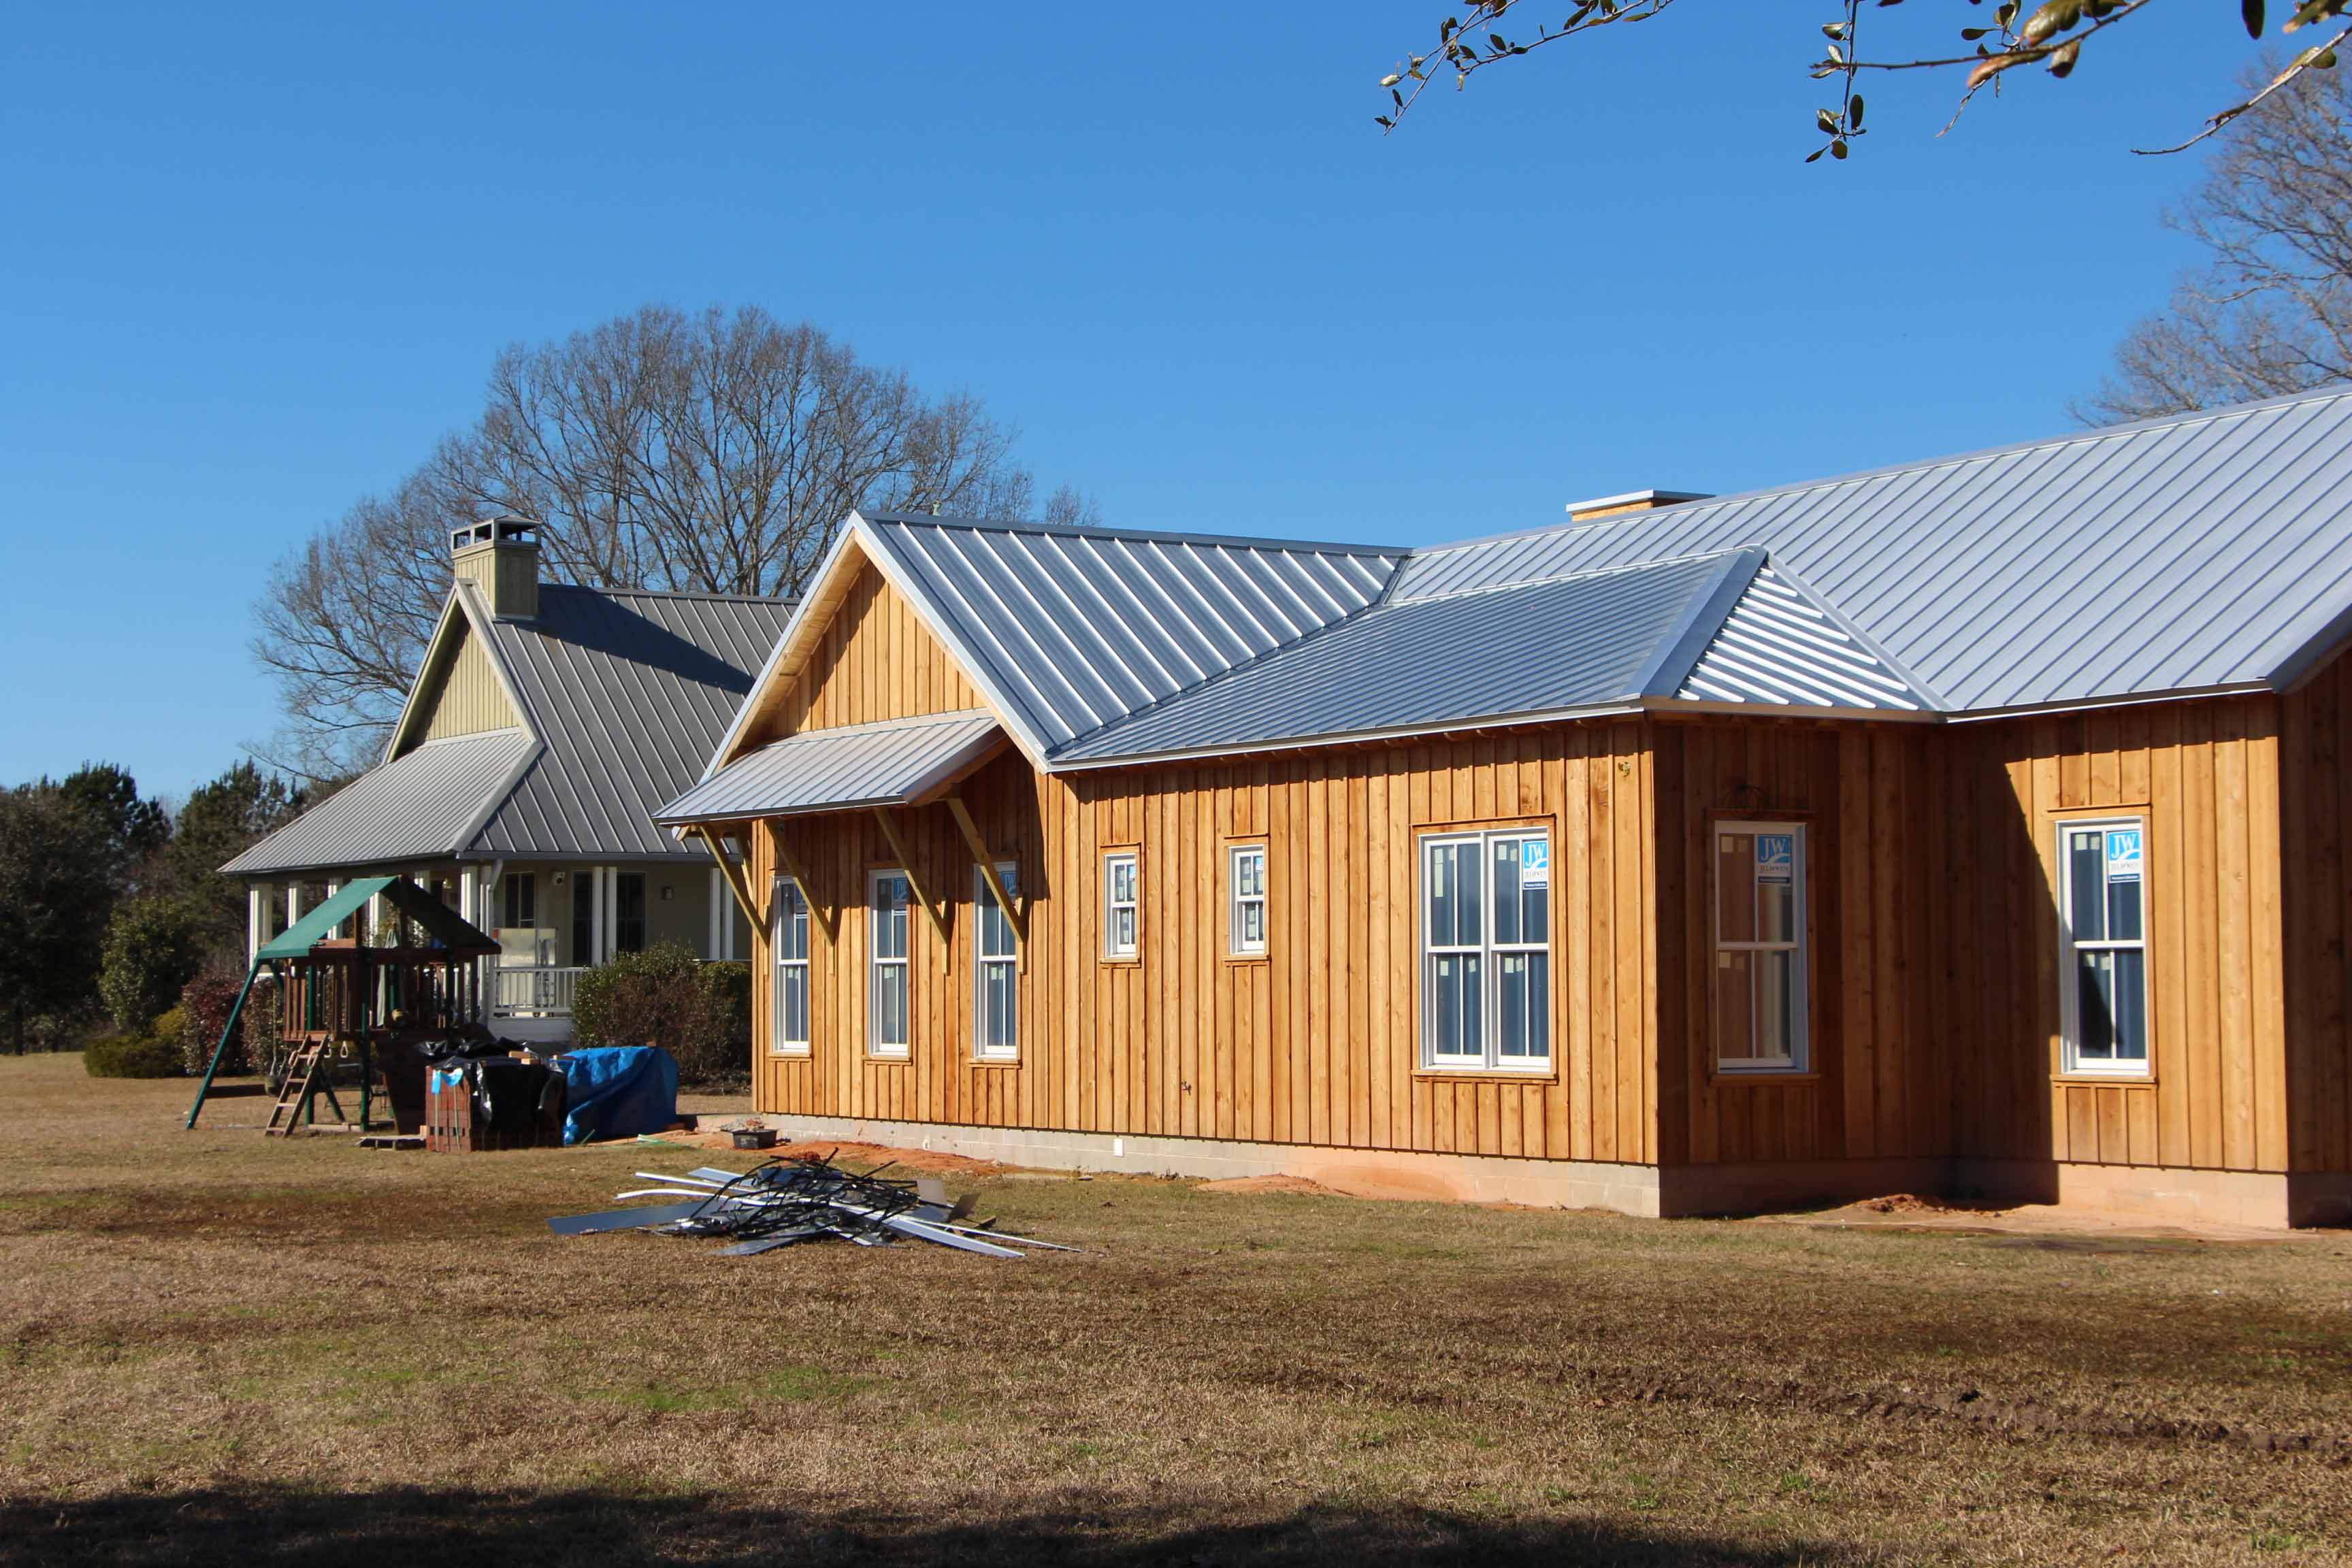 Guest House Construction : Poplarville guest house under construction bell architecture